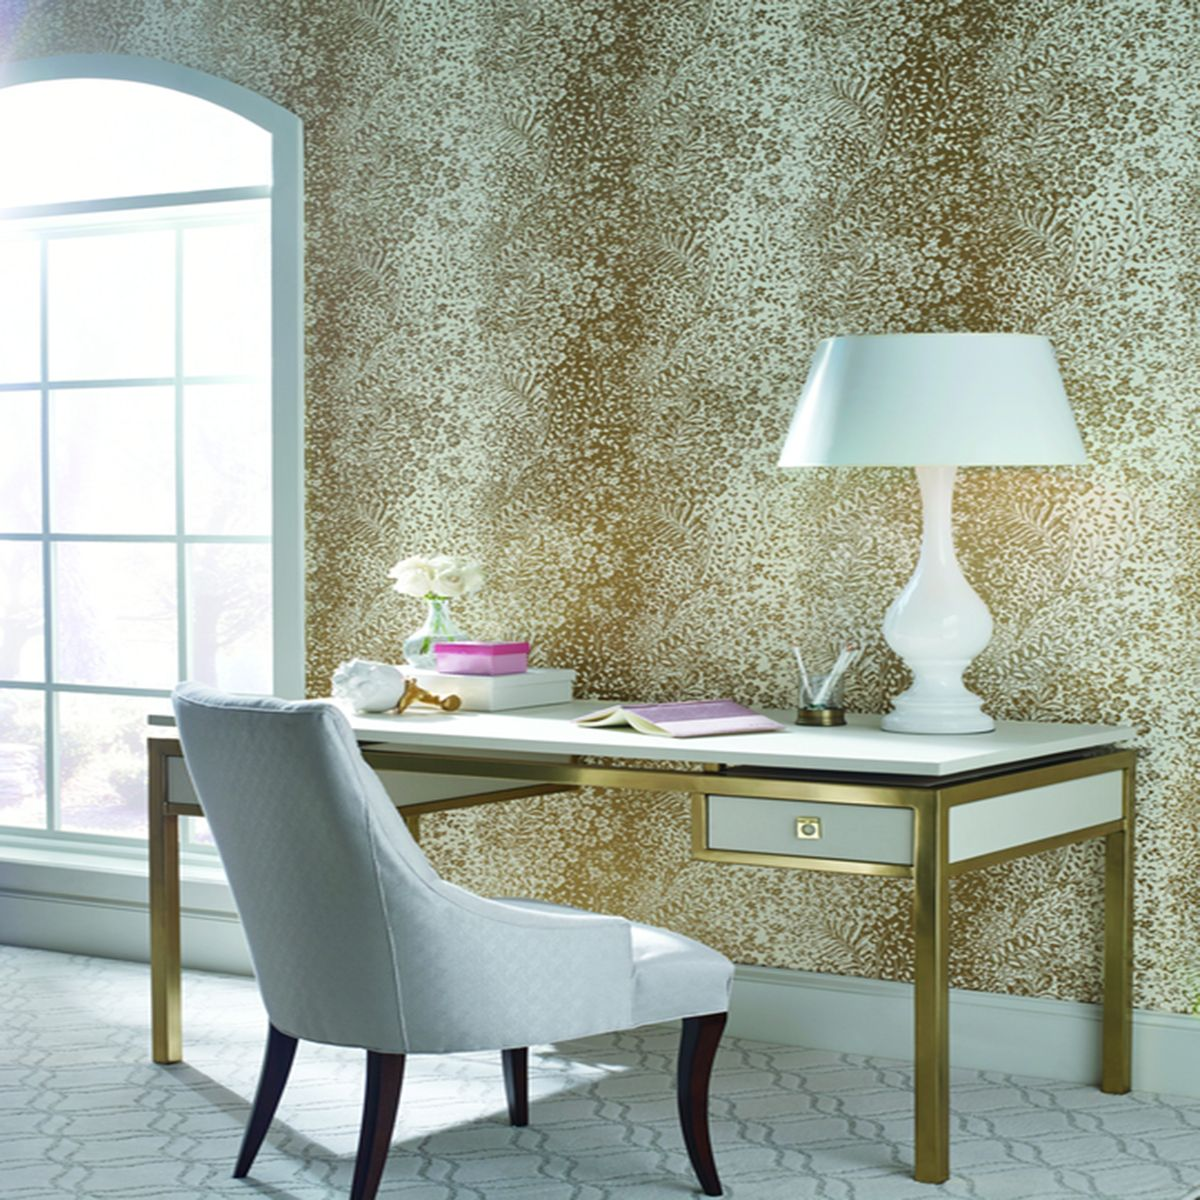 Dream On Bountiful Wallpaper In Yellow Gold Gray Interior Doors Home Decor Wall Coverings